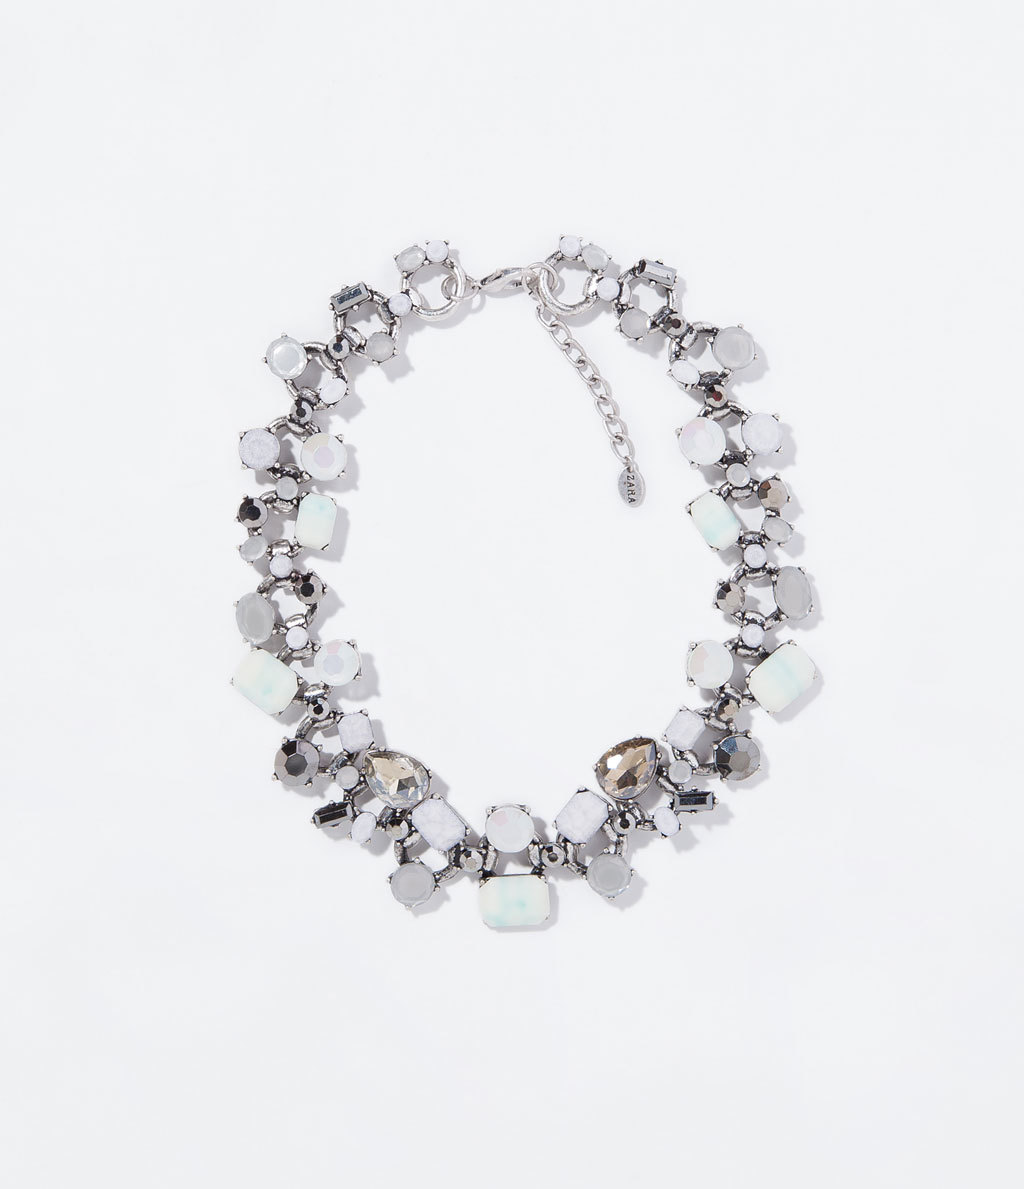 Chain And Stones Necklace - predominant colour: white; occasions: evening, occasion; length: short; size: standard; material: chain/metal; finish: plain; embellishment: jewels/stone; secondary colour: clear; style: bib/statement; season: s/s 2014